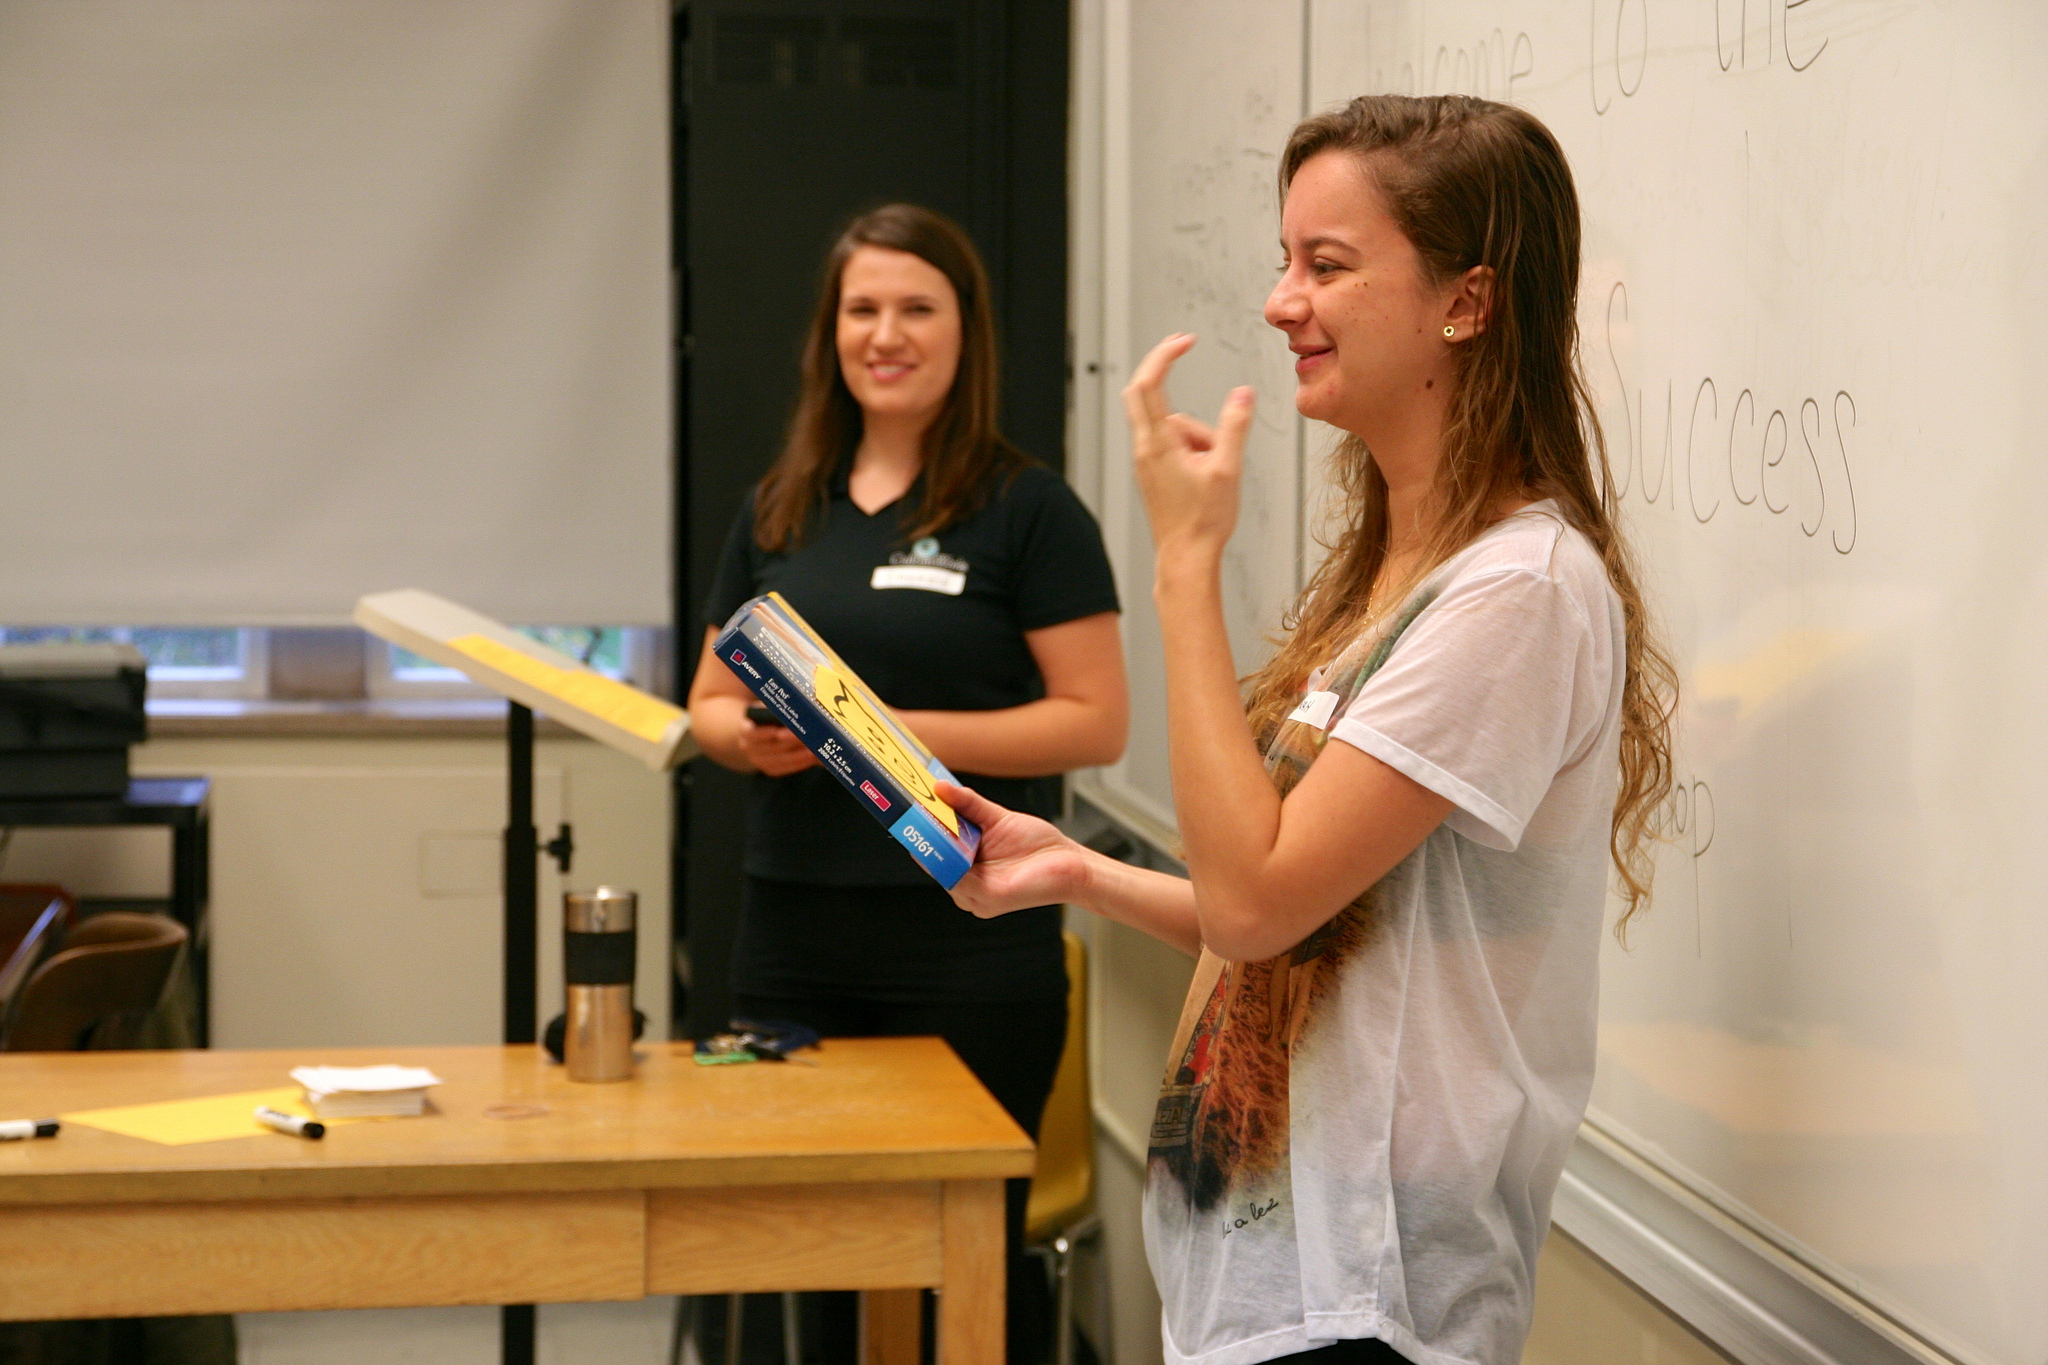 CultureWorks students learn to feel comfortable speaking up in their second language